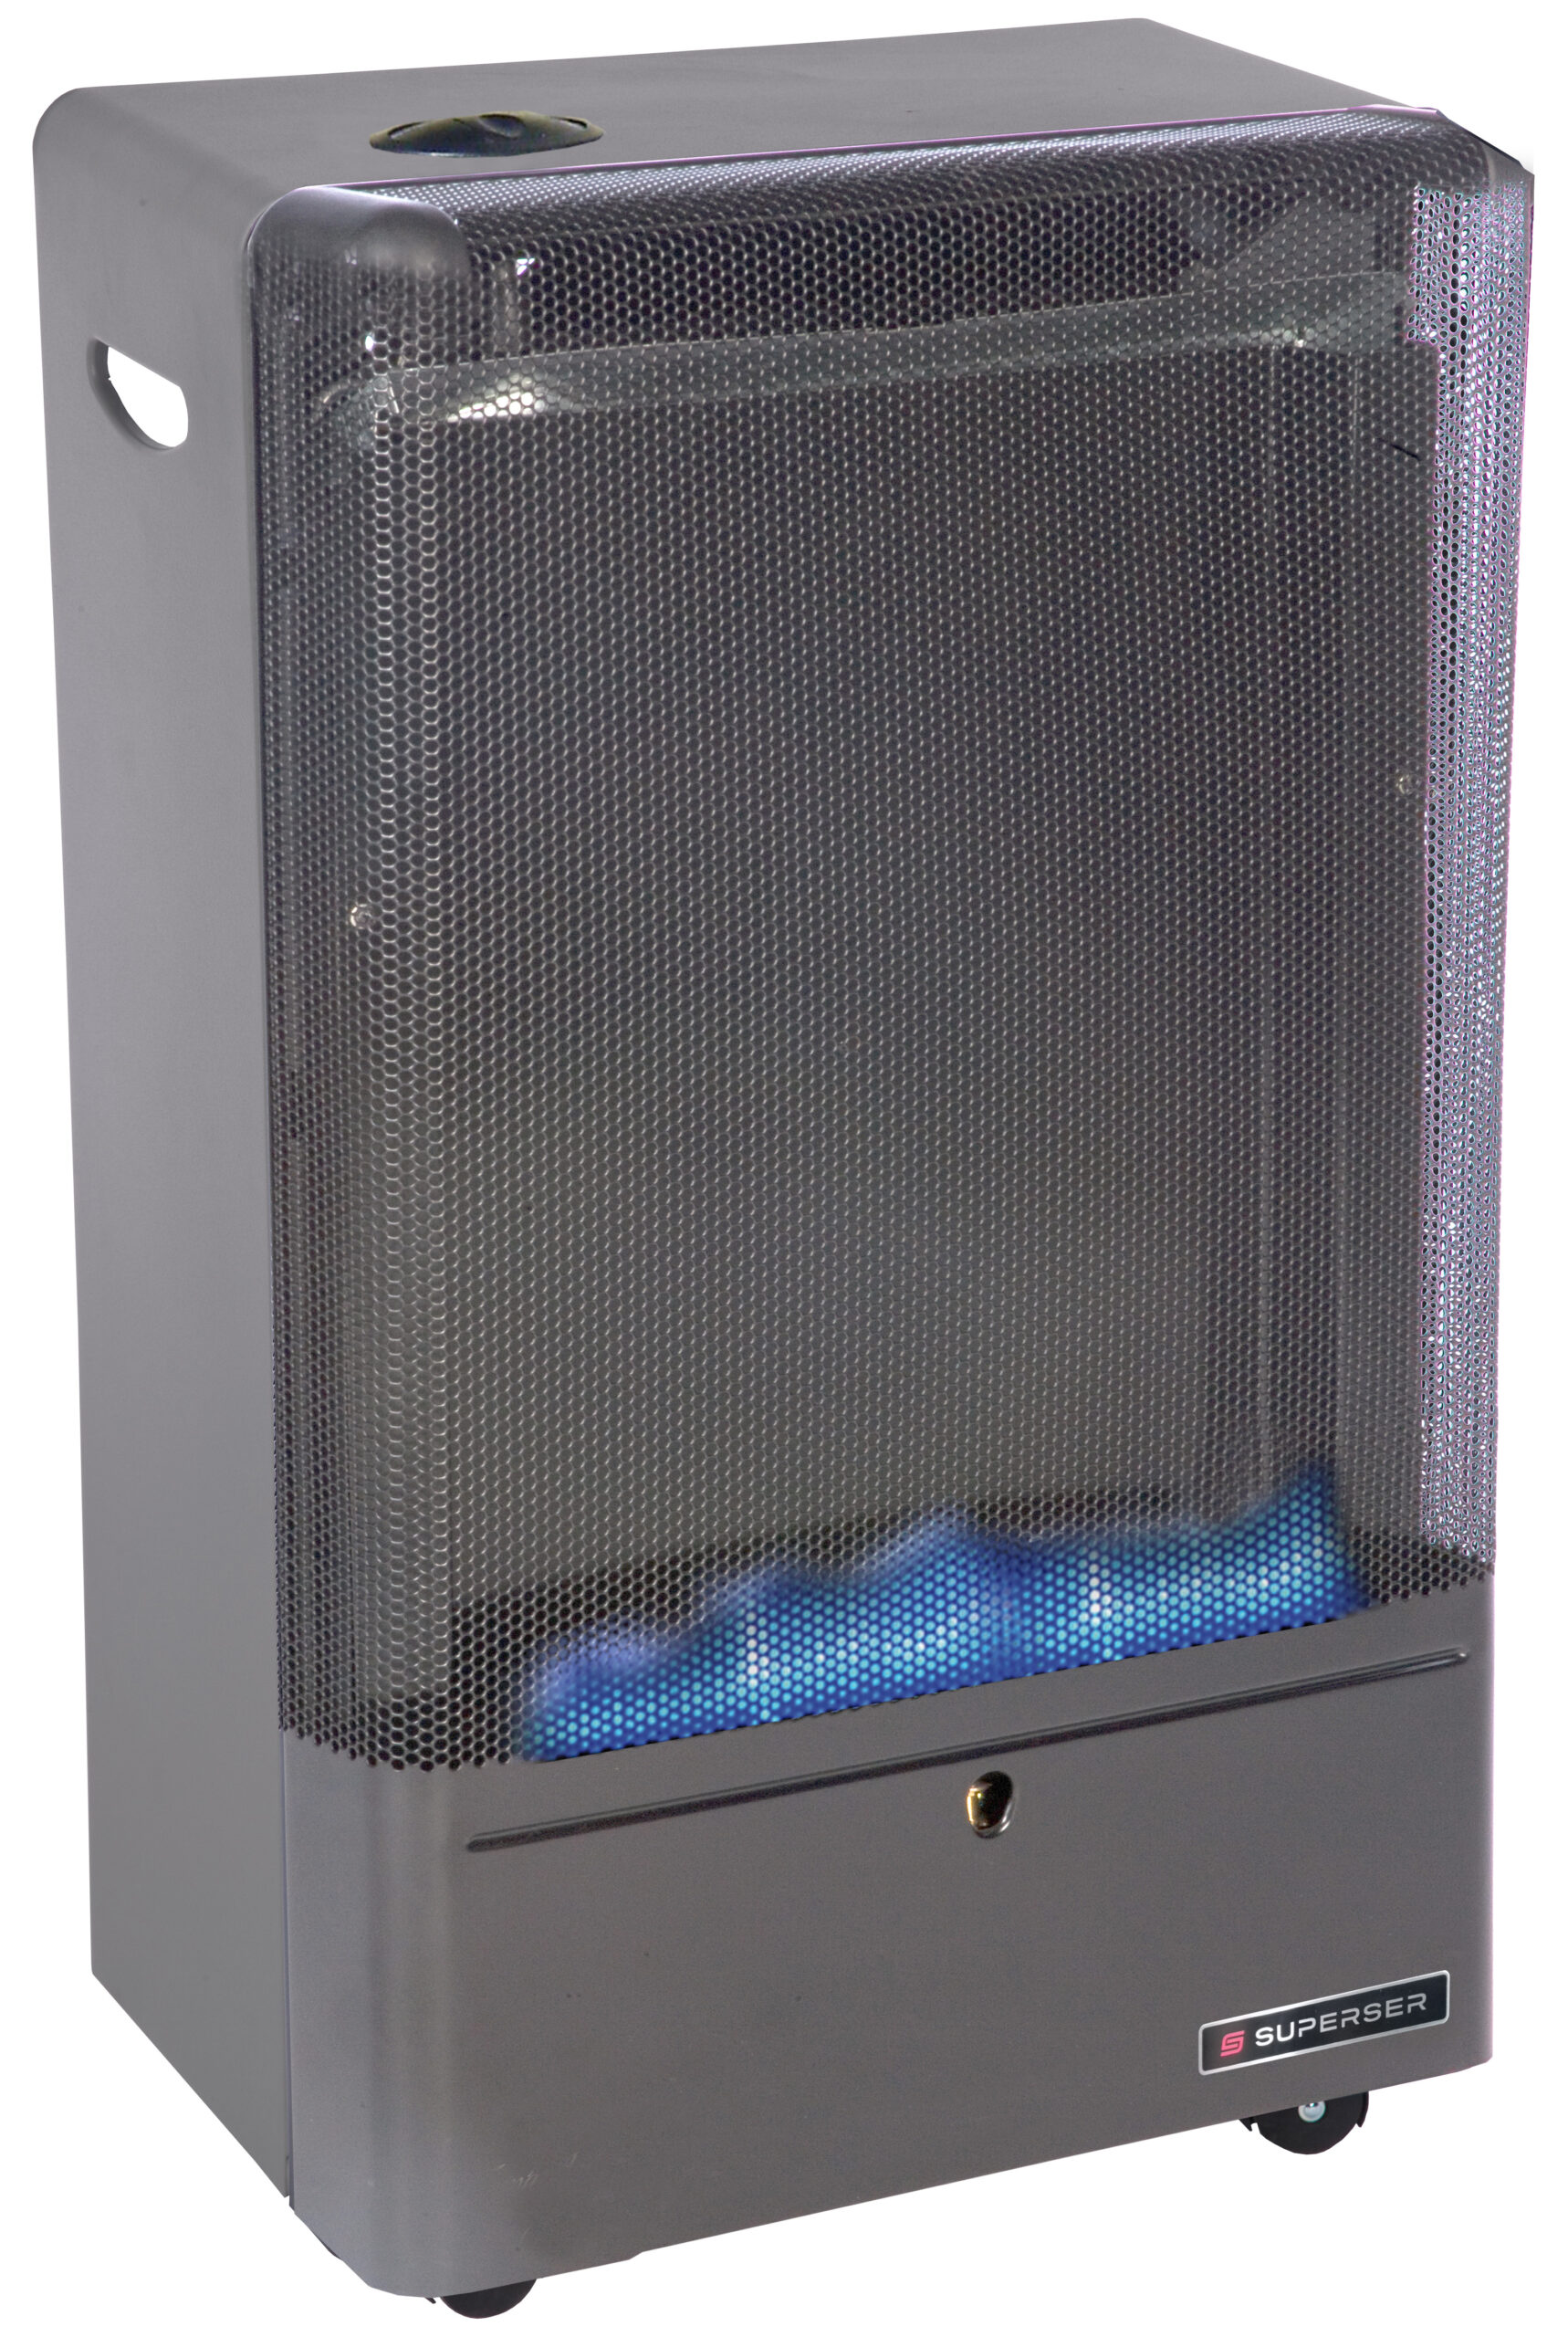 HBF15 Blue Flame image 1